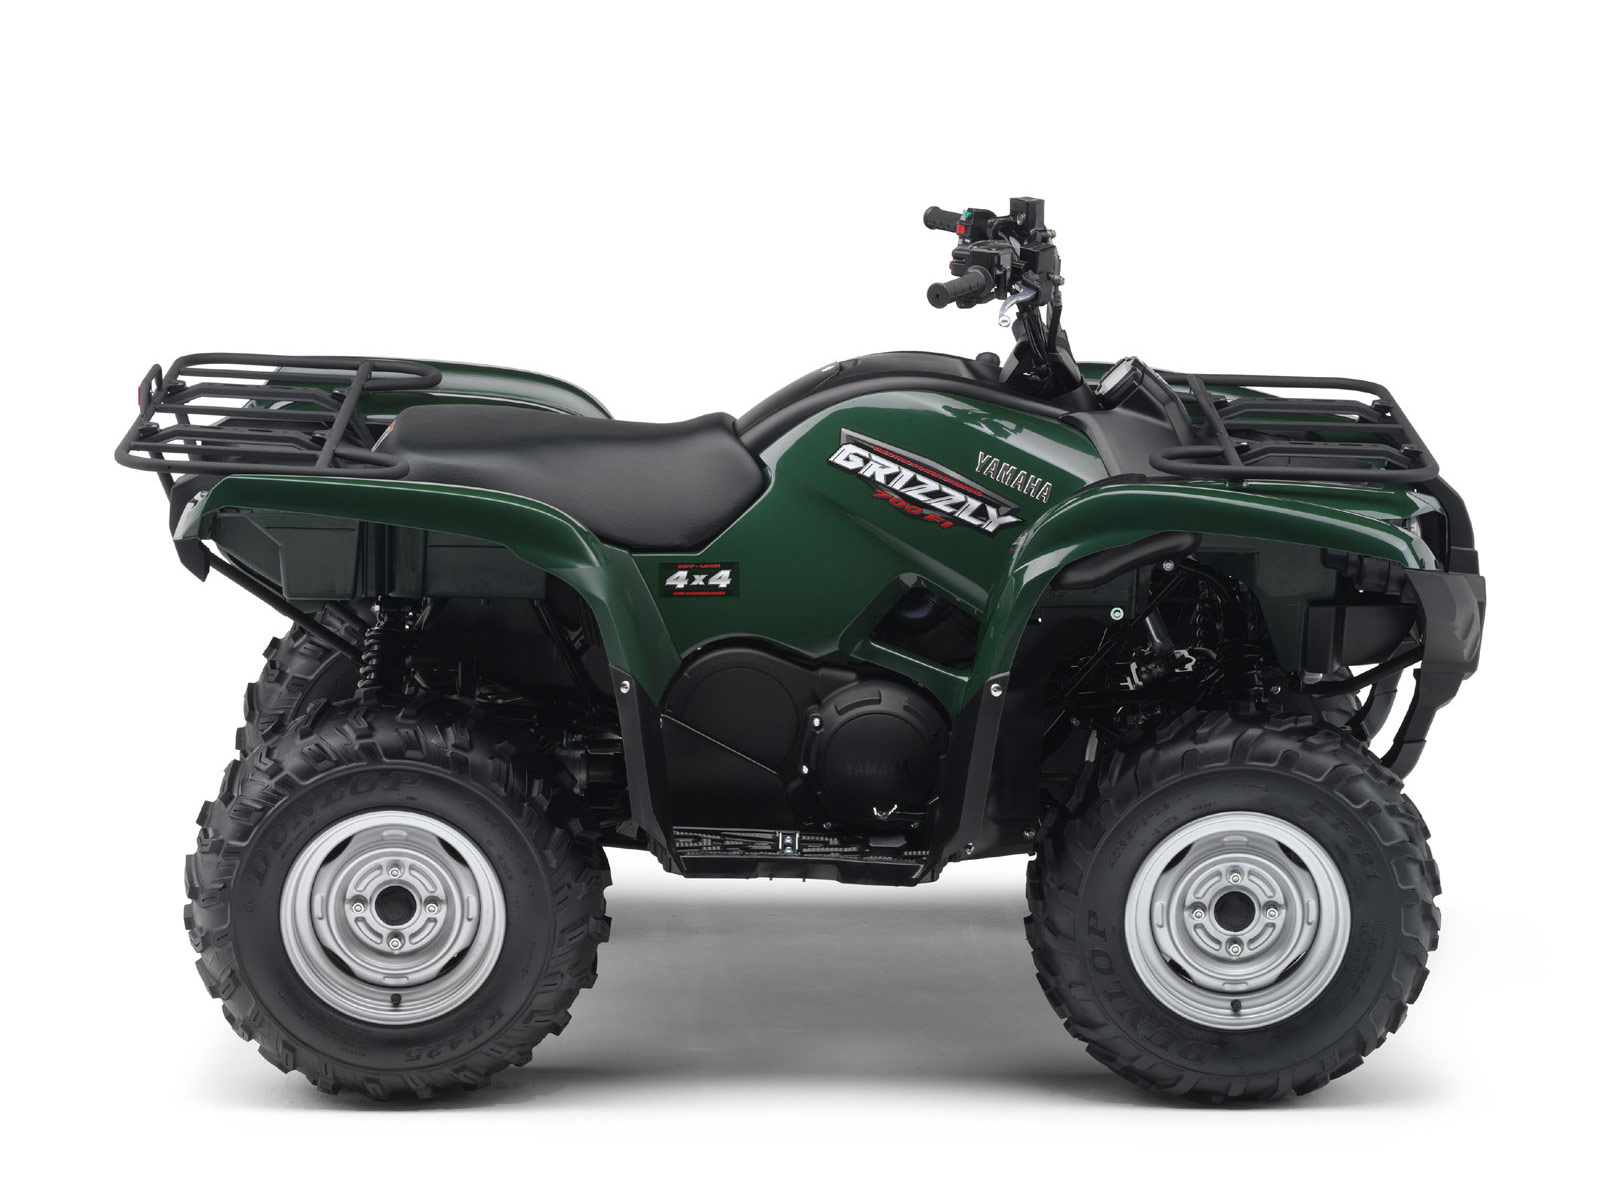 2009 grizzly 700fi yamaha atv pictures specs. Black Bedroom Furniture Sets. Home Design Ideas